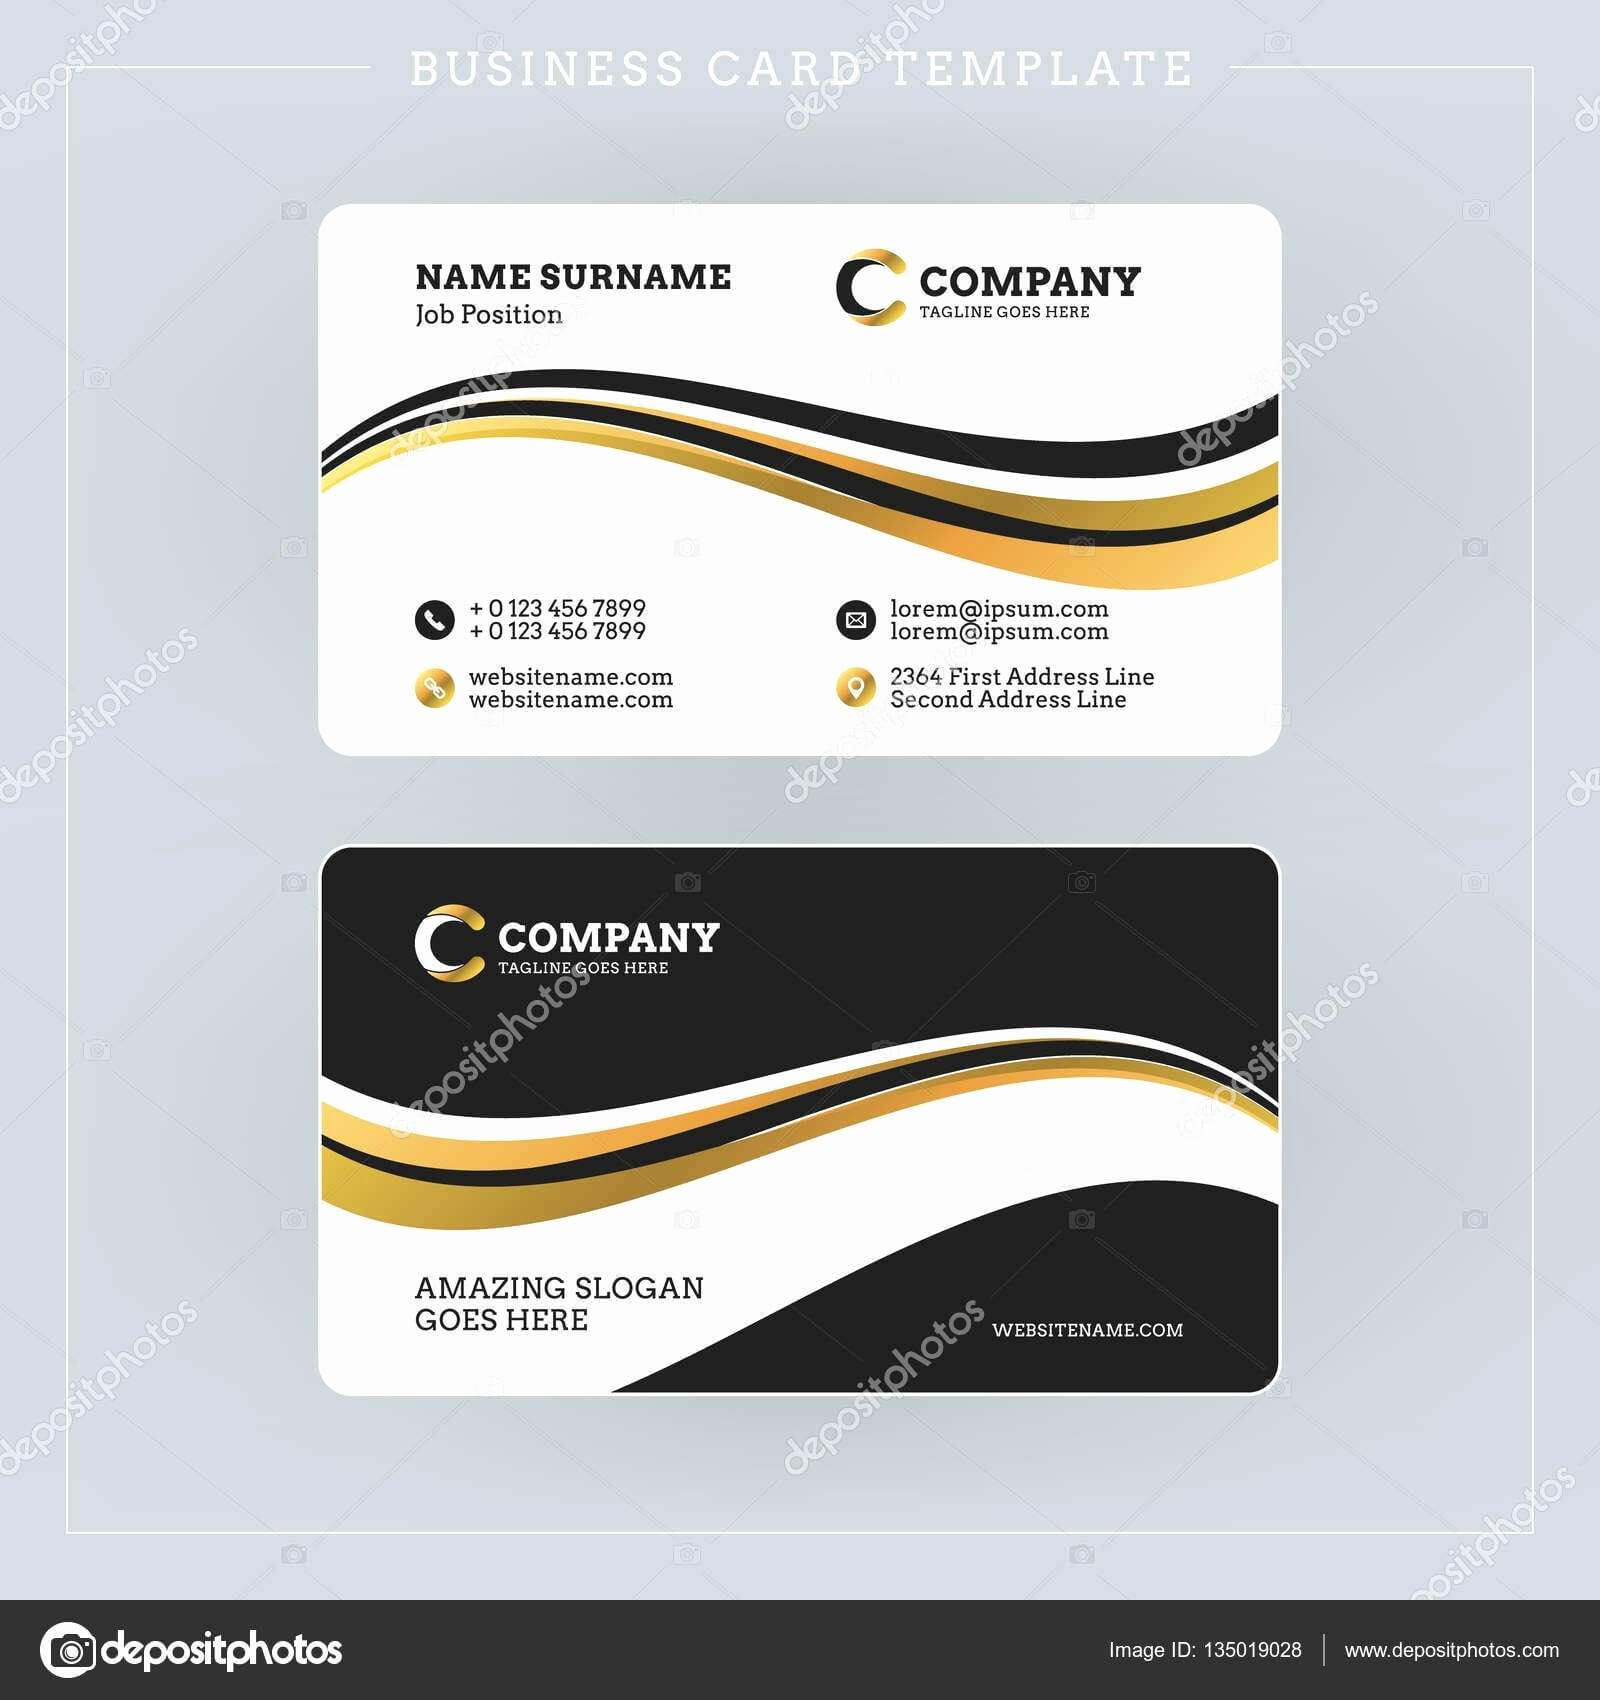 Two Sided Business Card Template Lovely How To Create A Regarding Double Sided Business Card Template Illustrator